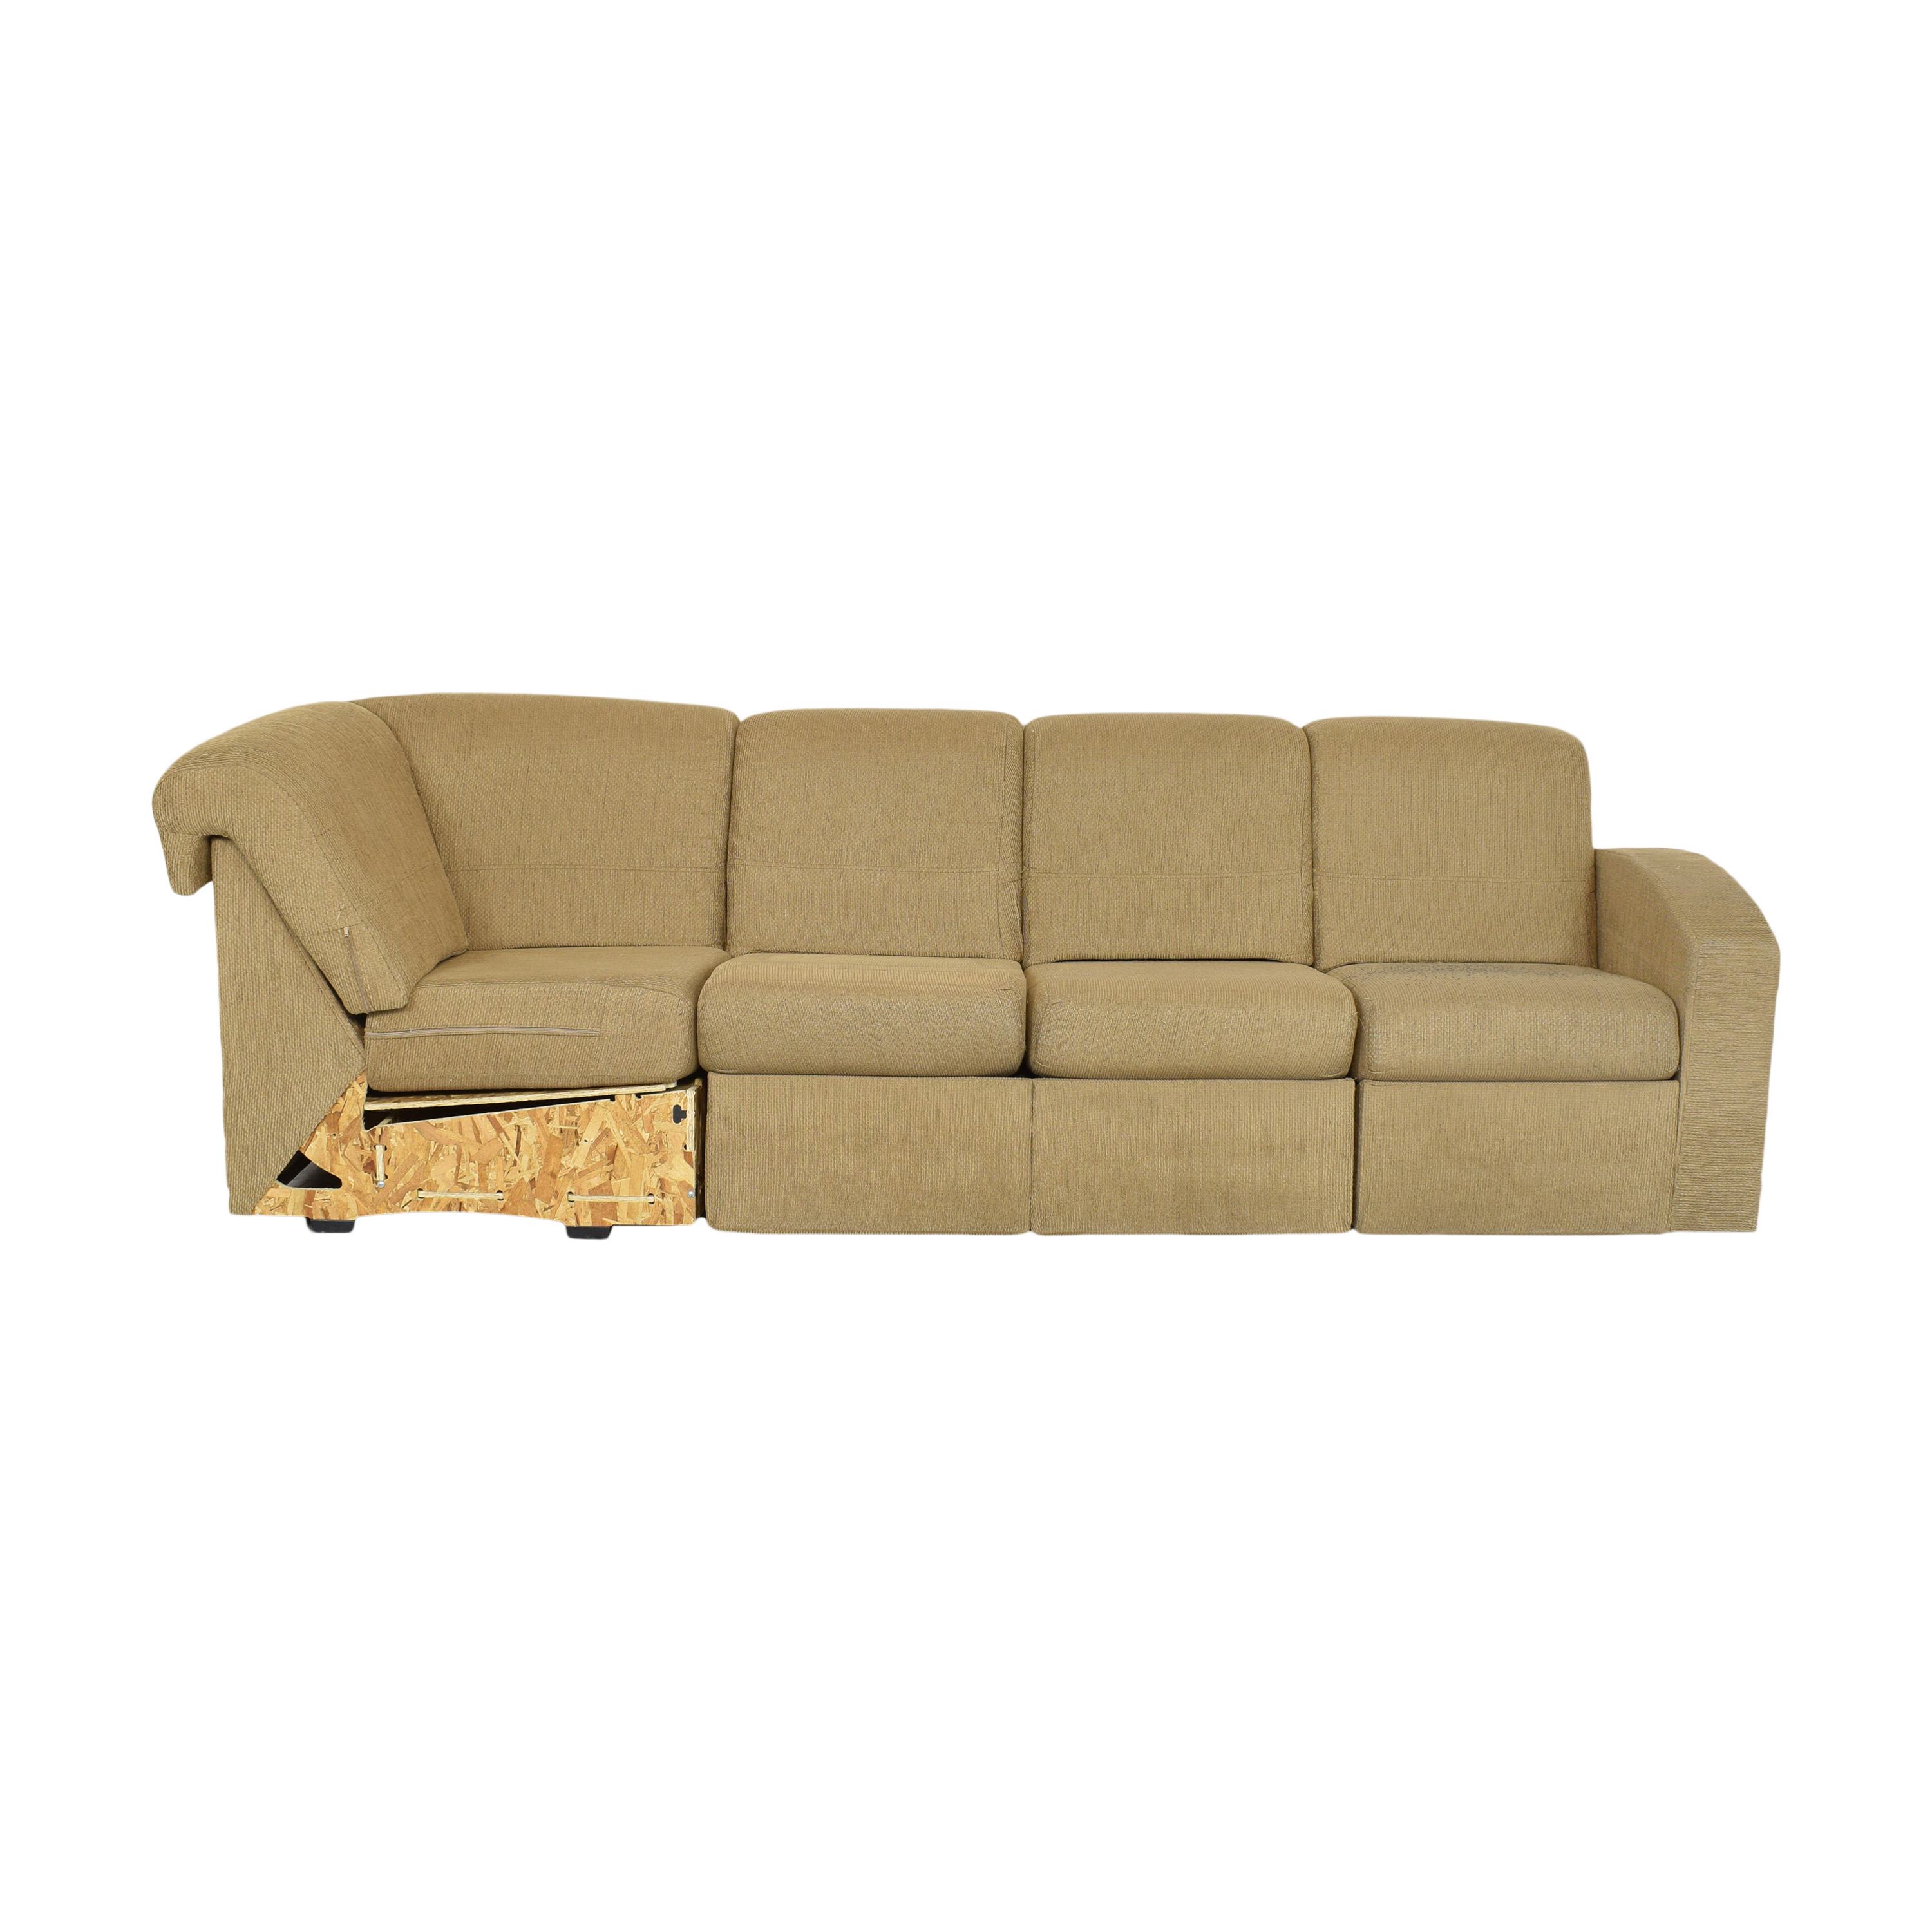 Home Reserve Home Reserve Brooks Sectional Couch Sofas